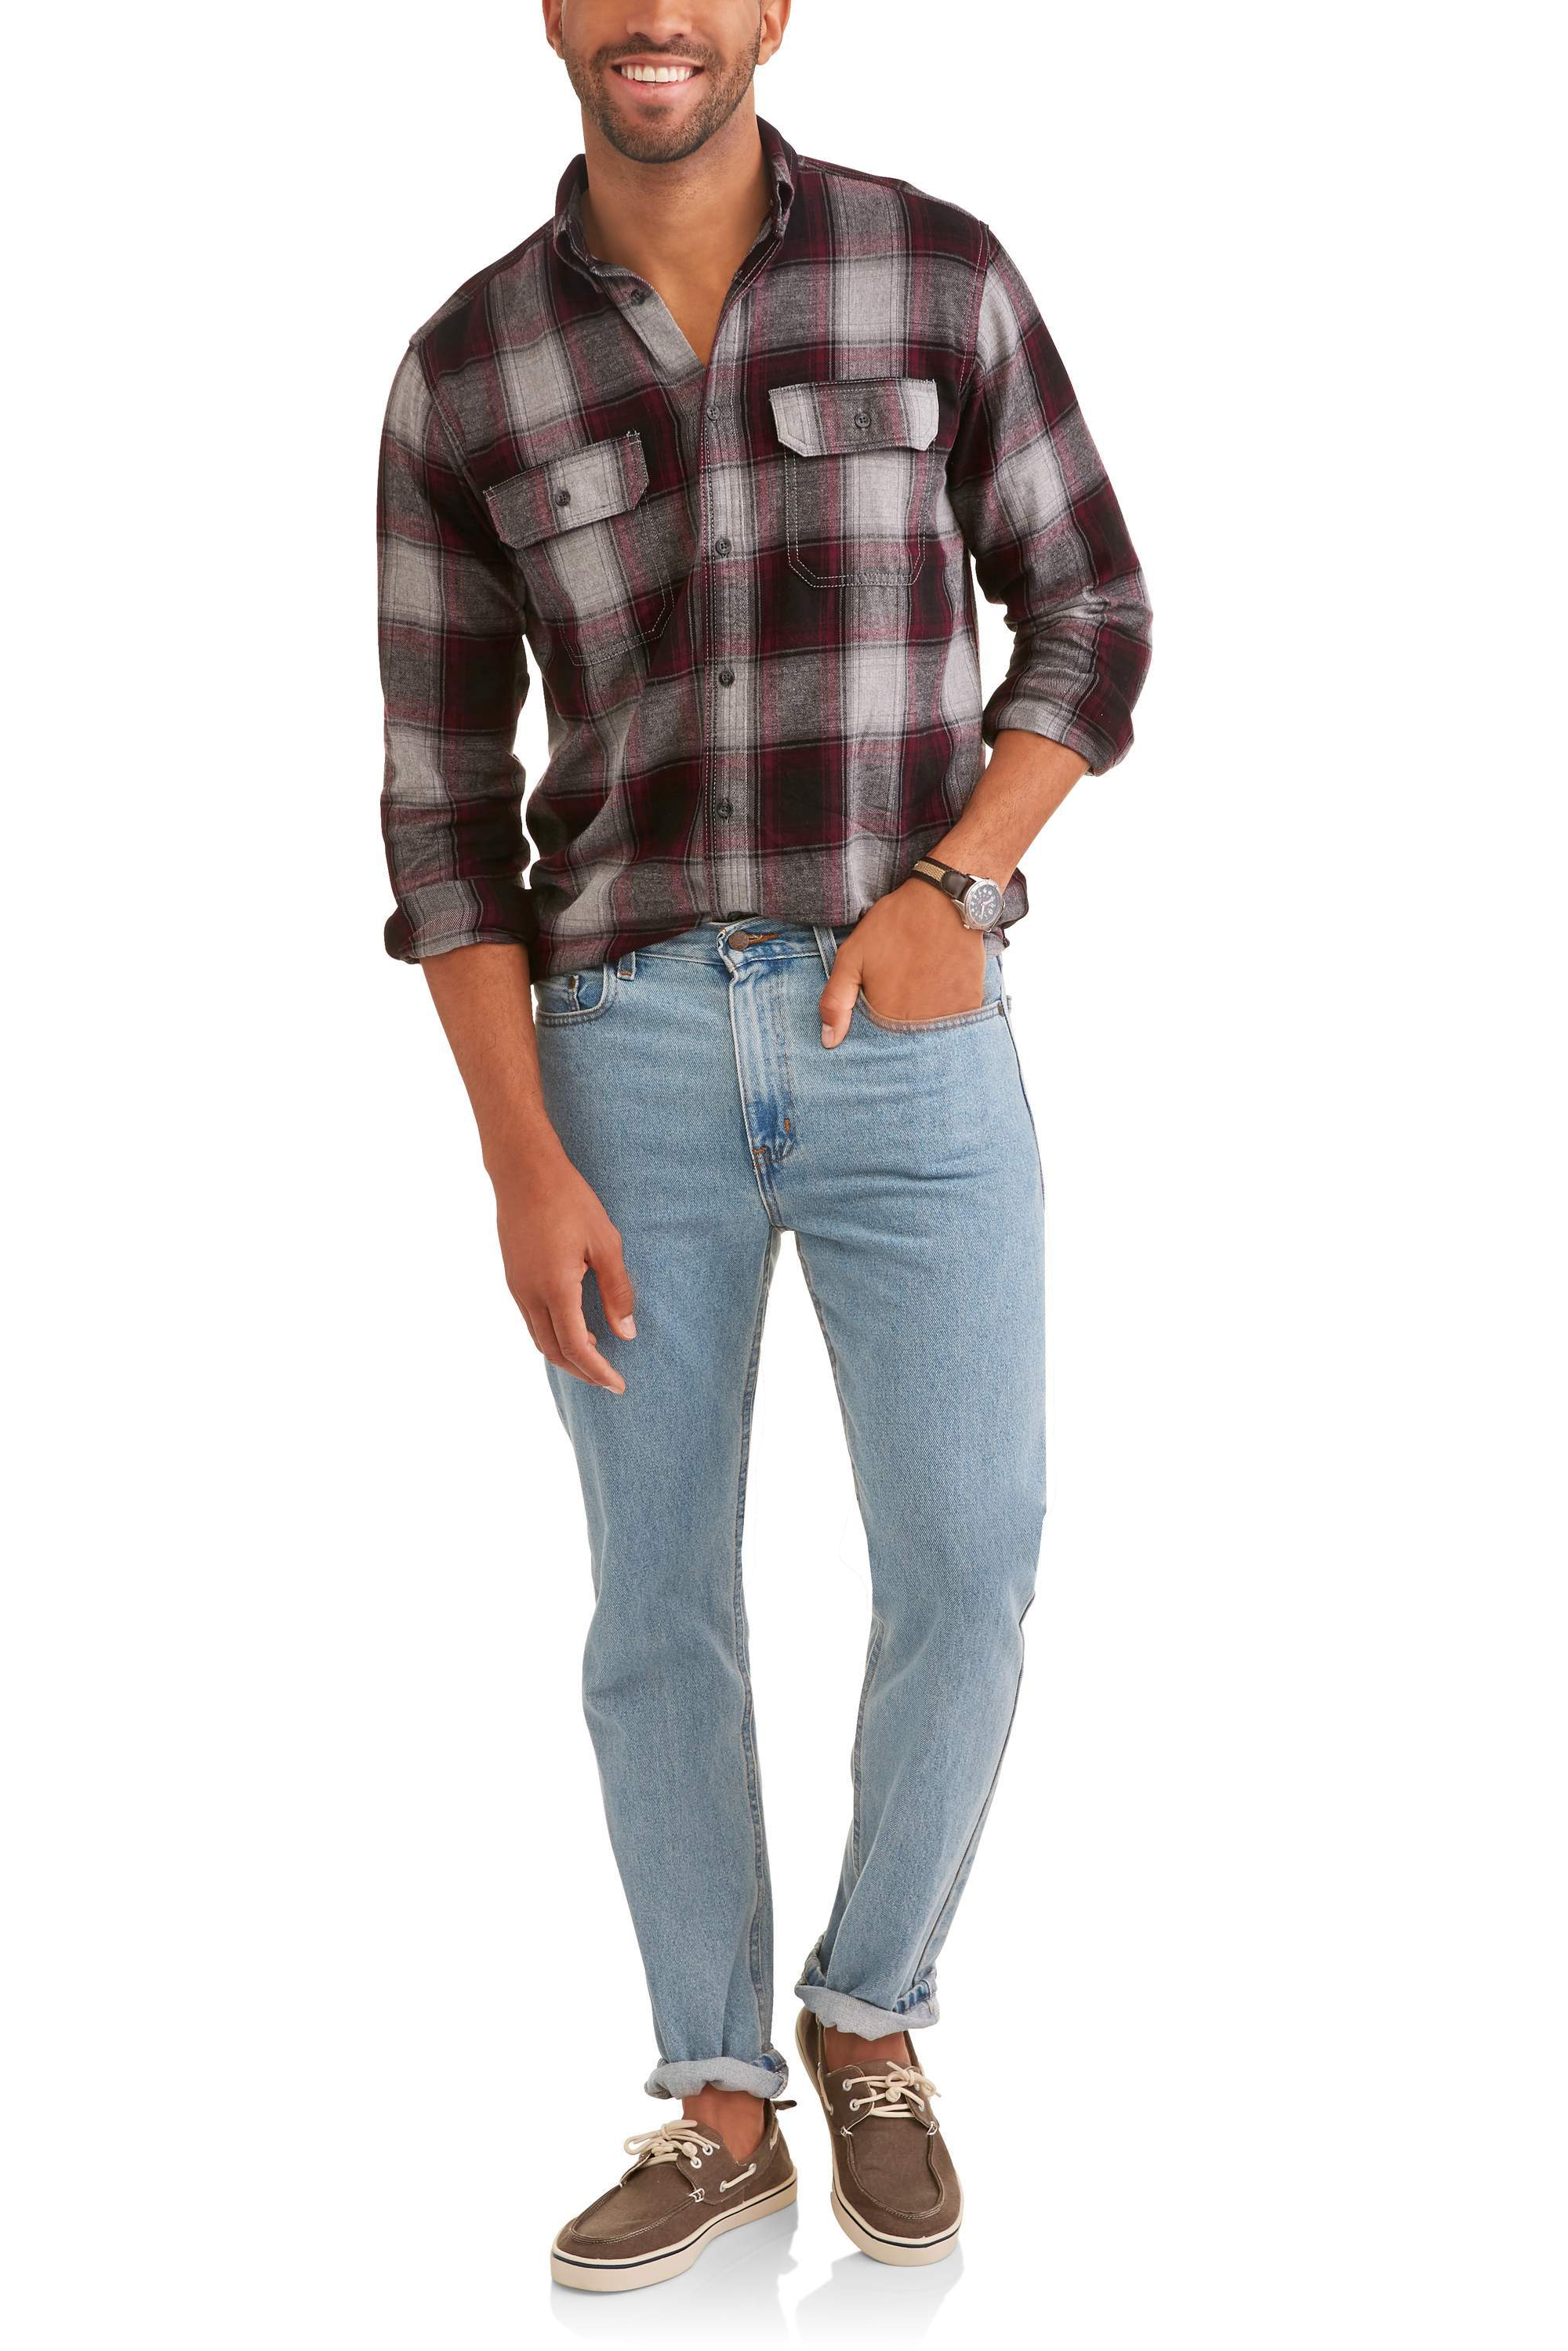 Faded Glory Big and Tall Men's Long Sleeve Flannel Shirt